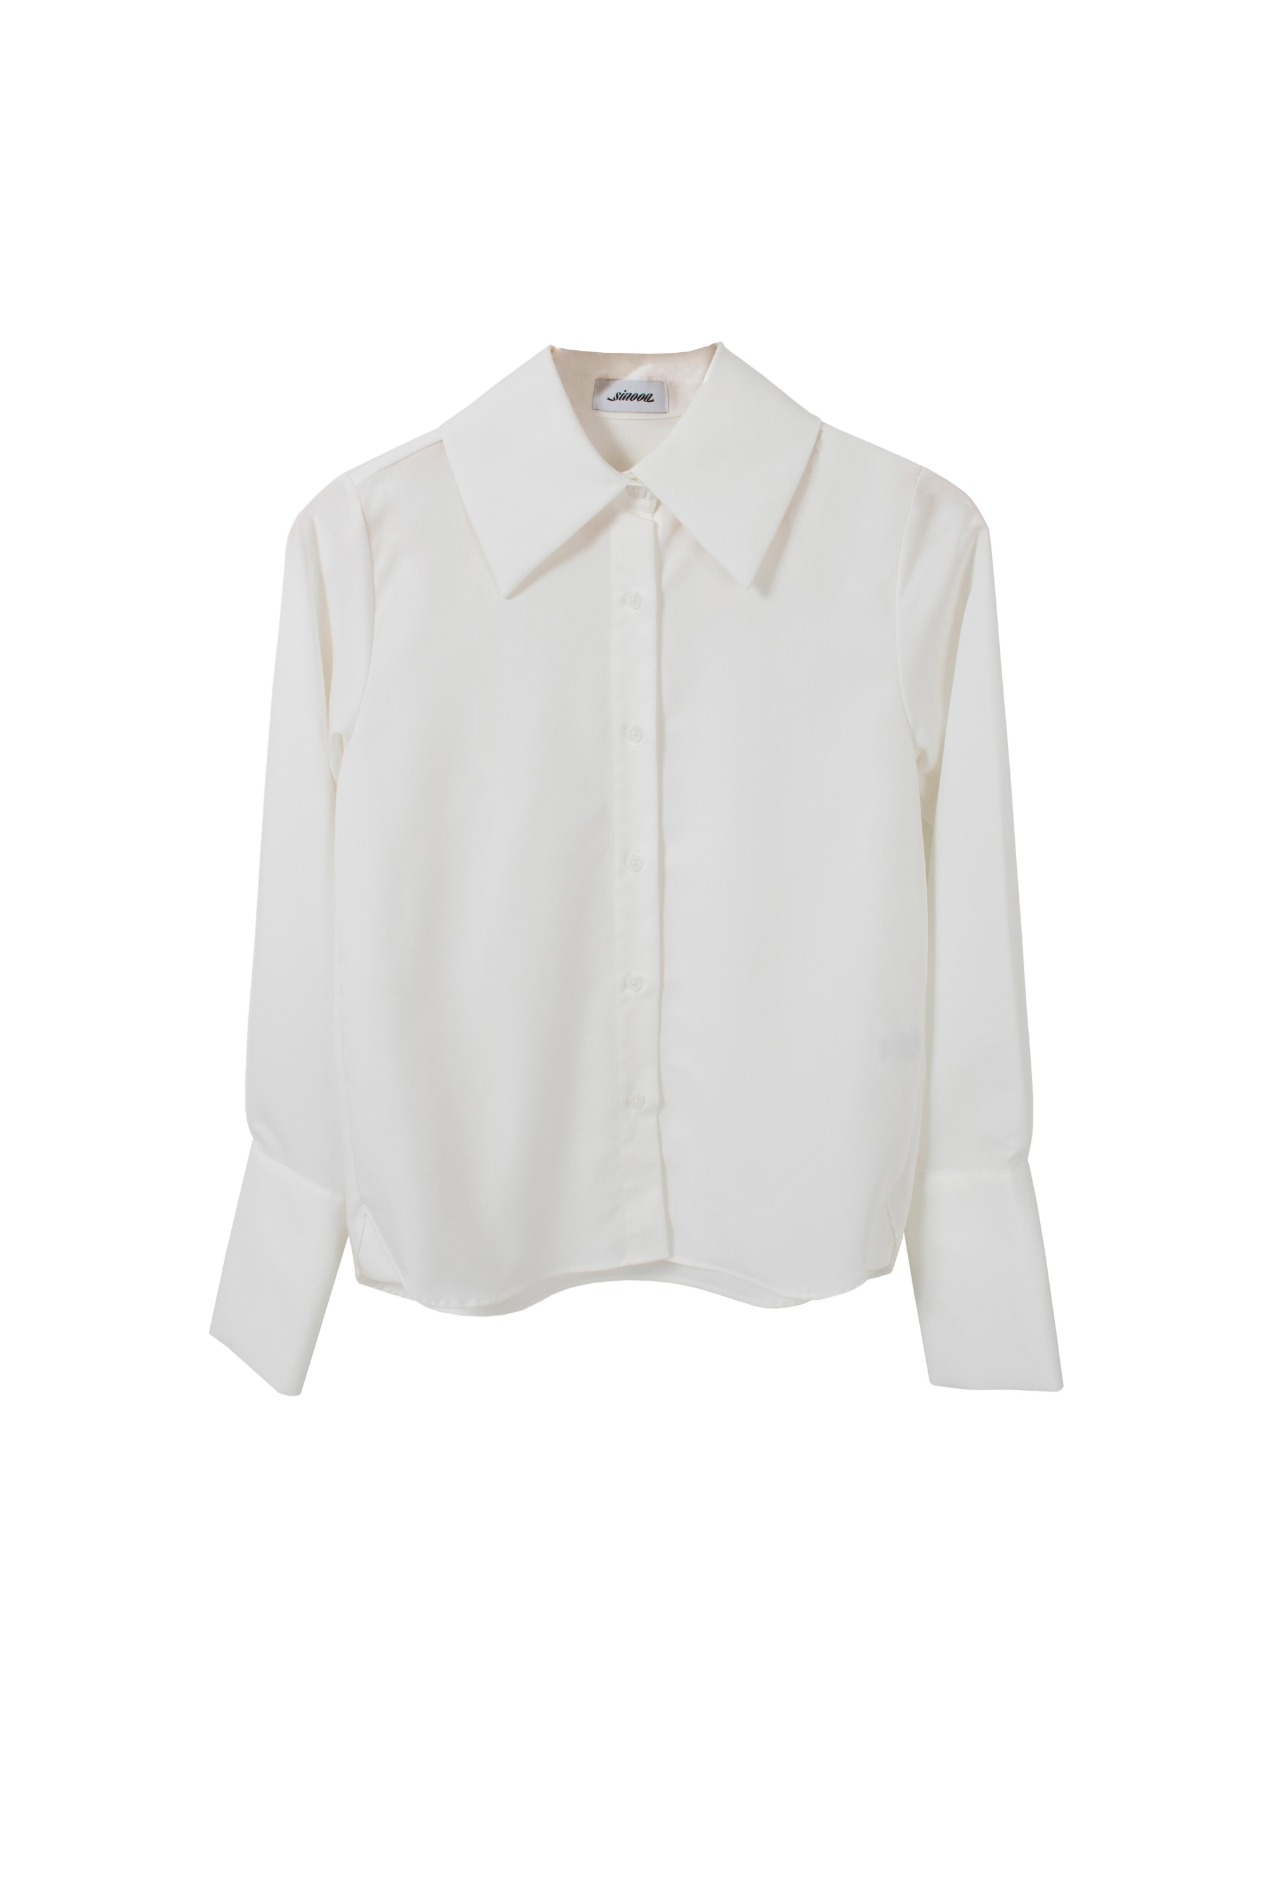 Soap blouse (white)